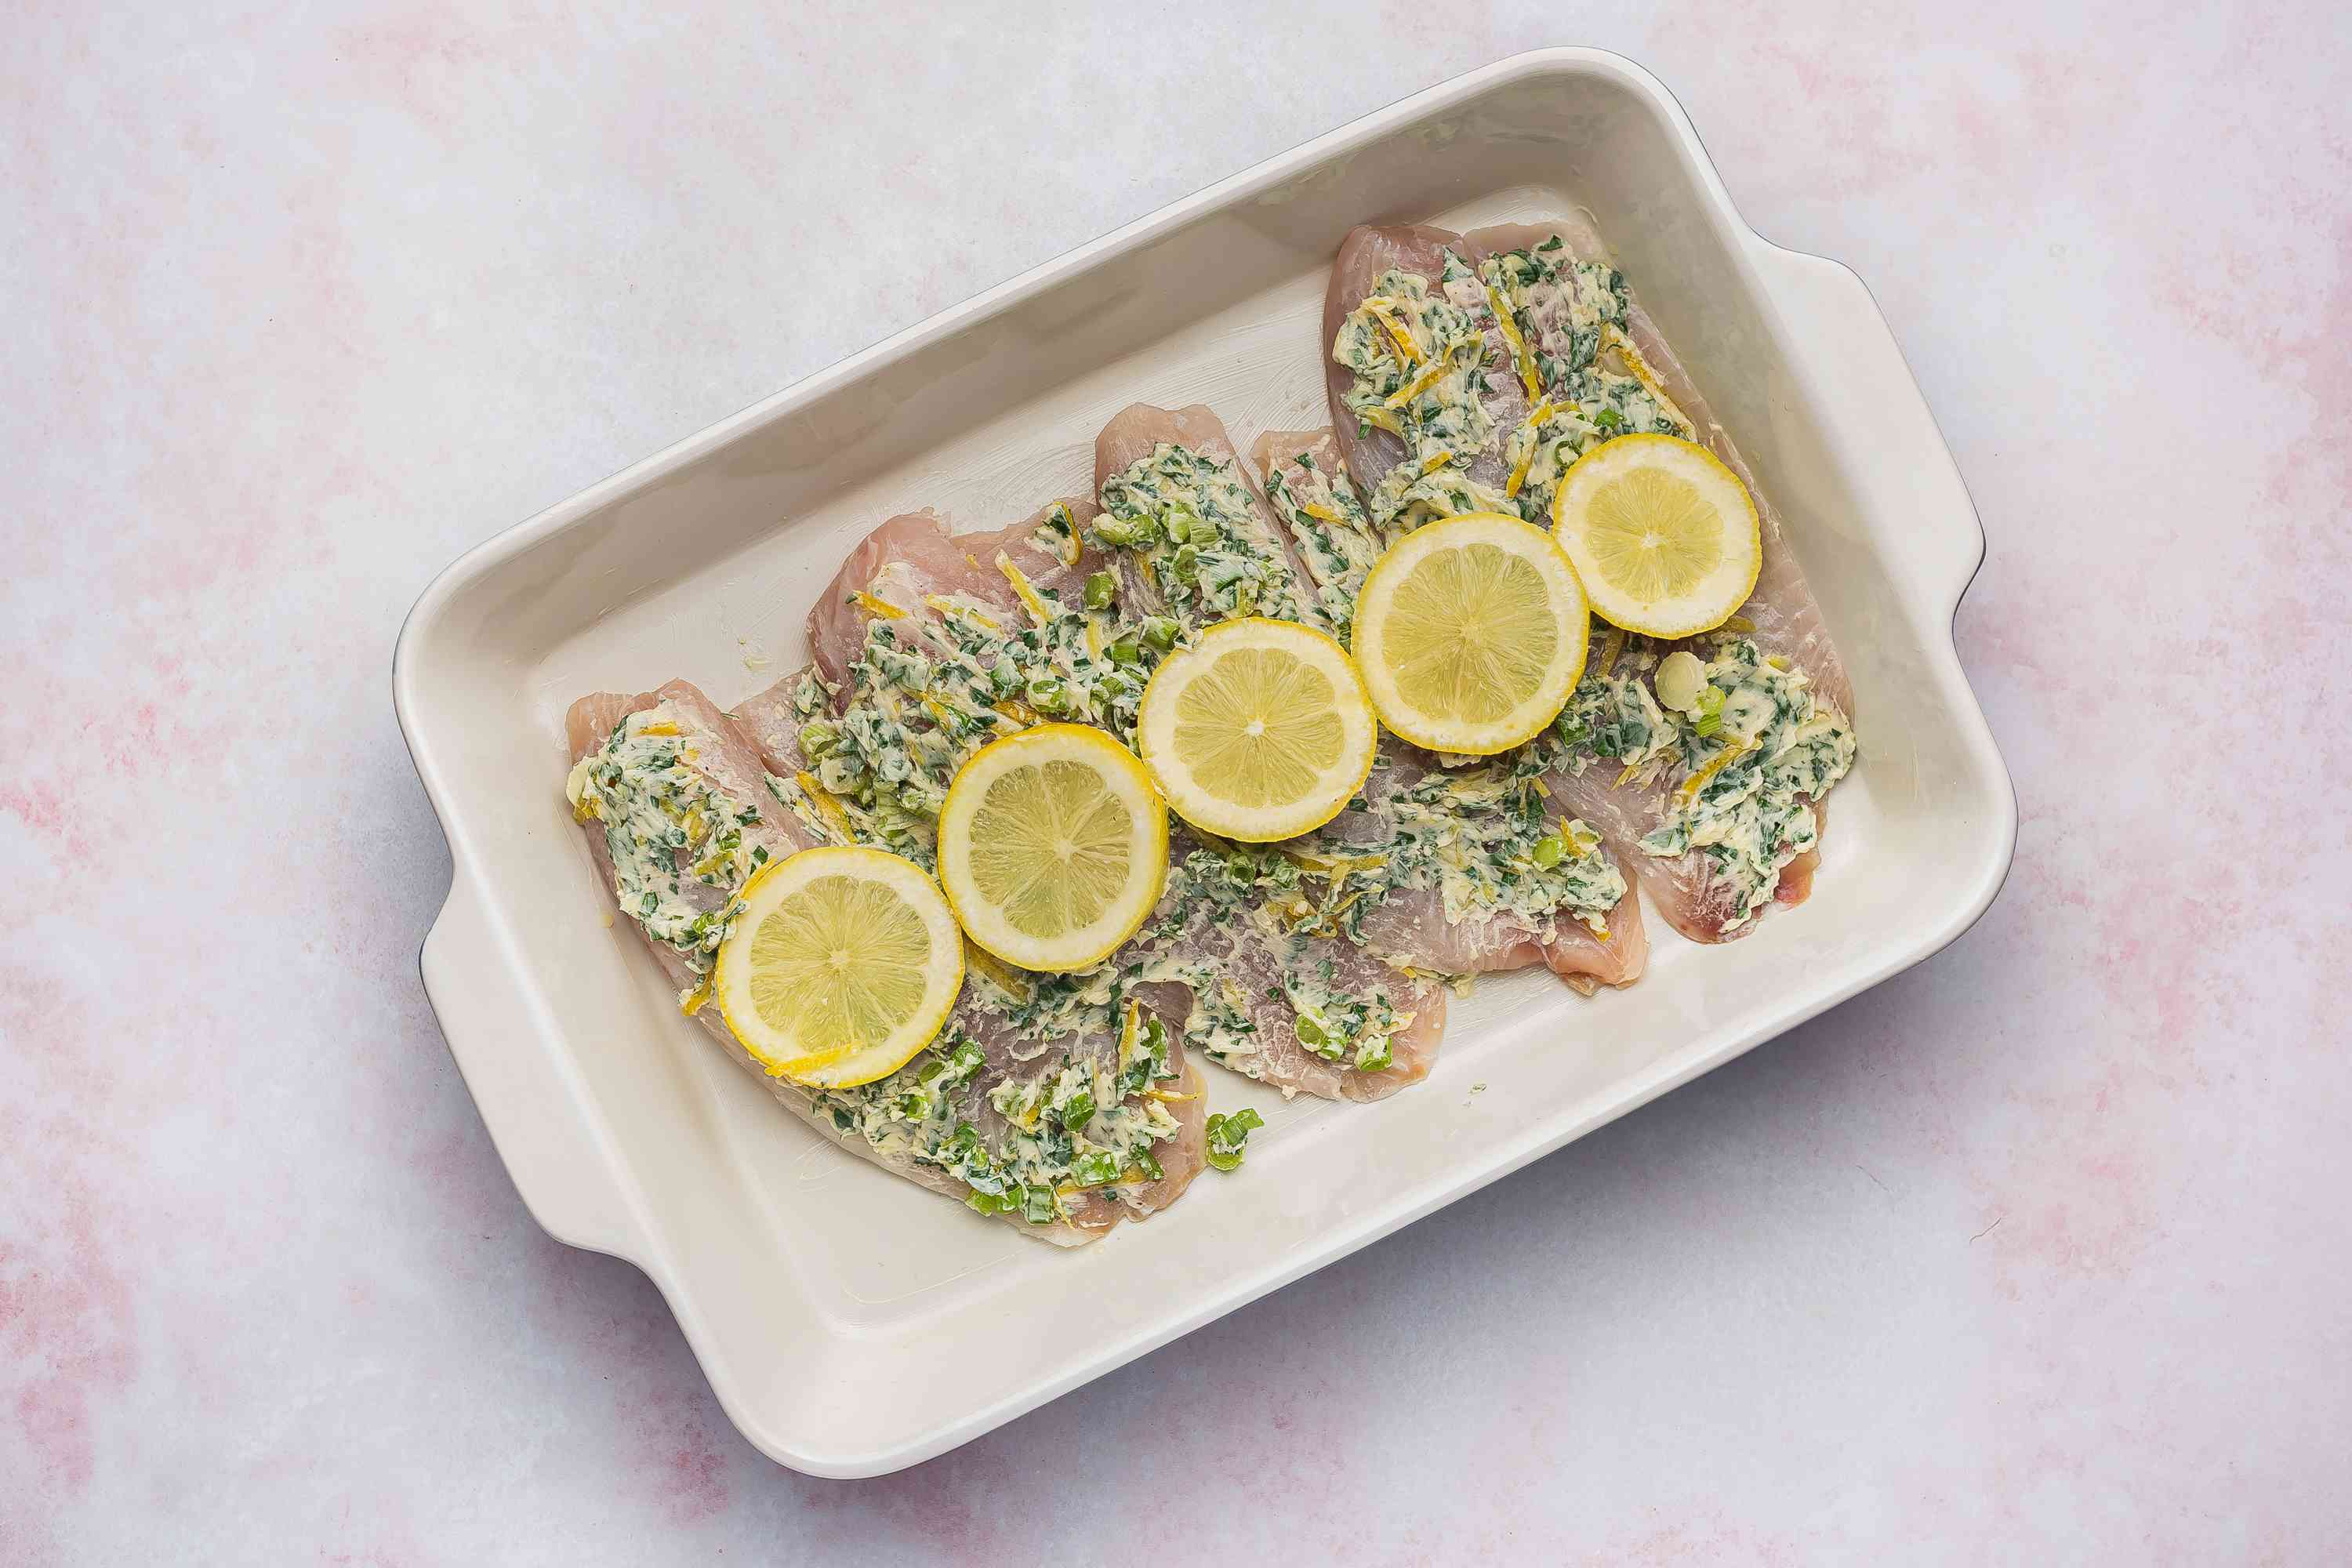 Tilapia, butter mixture, and lemon rounds in a baking dish